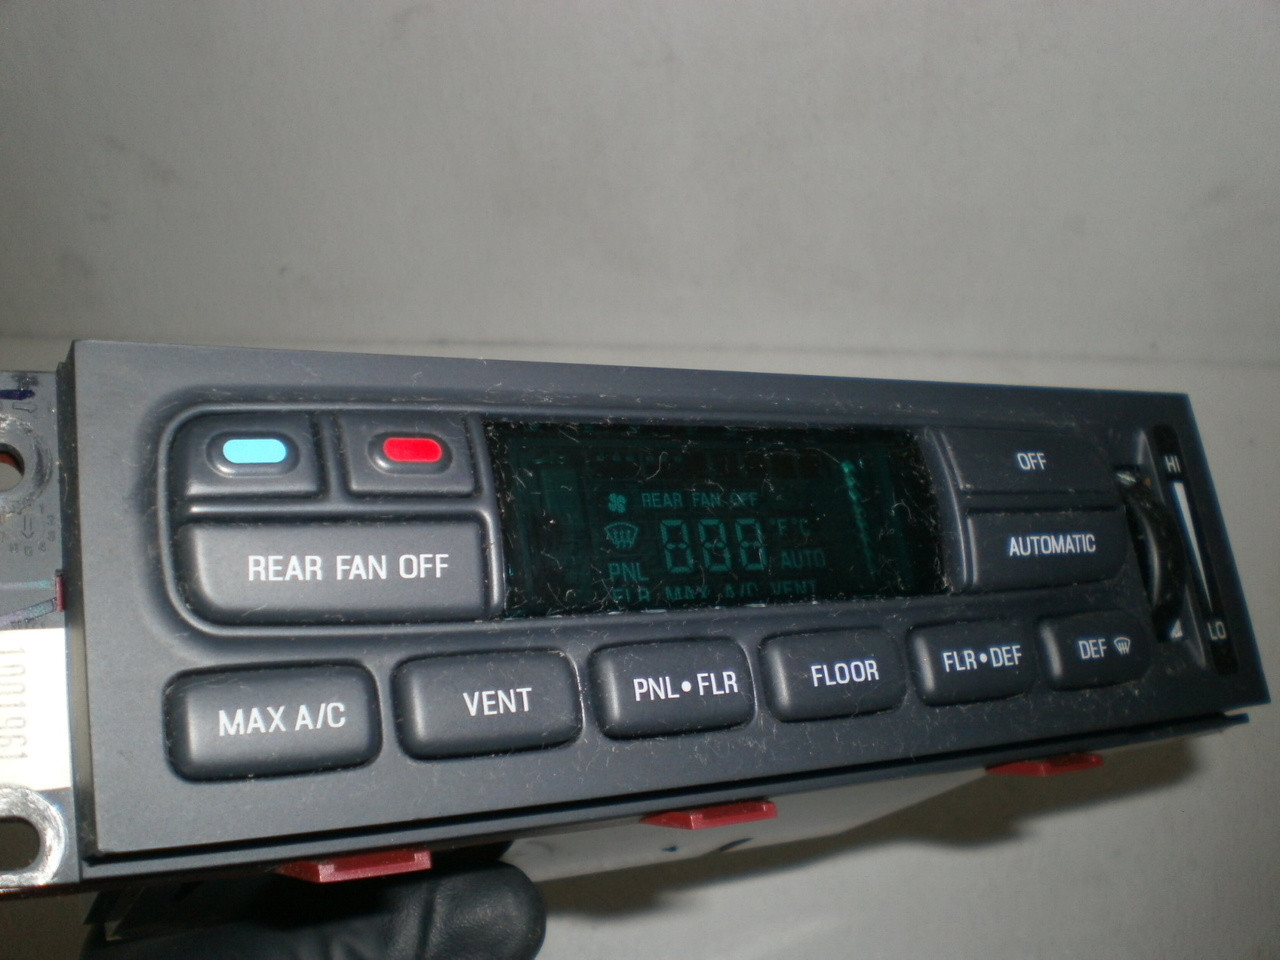 1996 1997 Ford Explorer Heater Climate Control Dash Panel Switches Auto Fan For Automatic Temperature Mode Electronic F67h 19c933 Ag